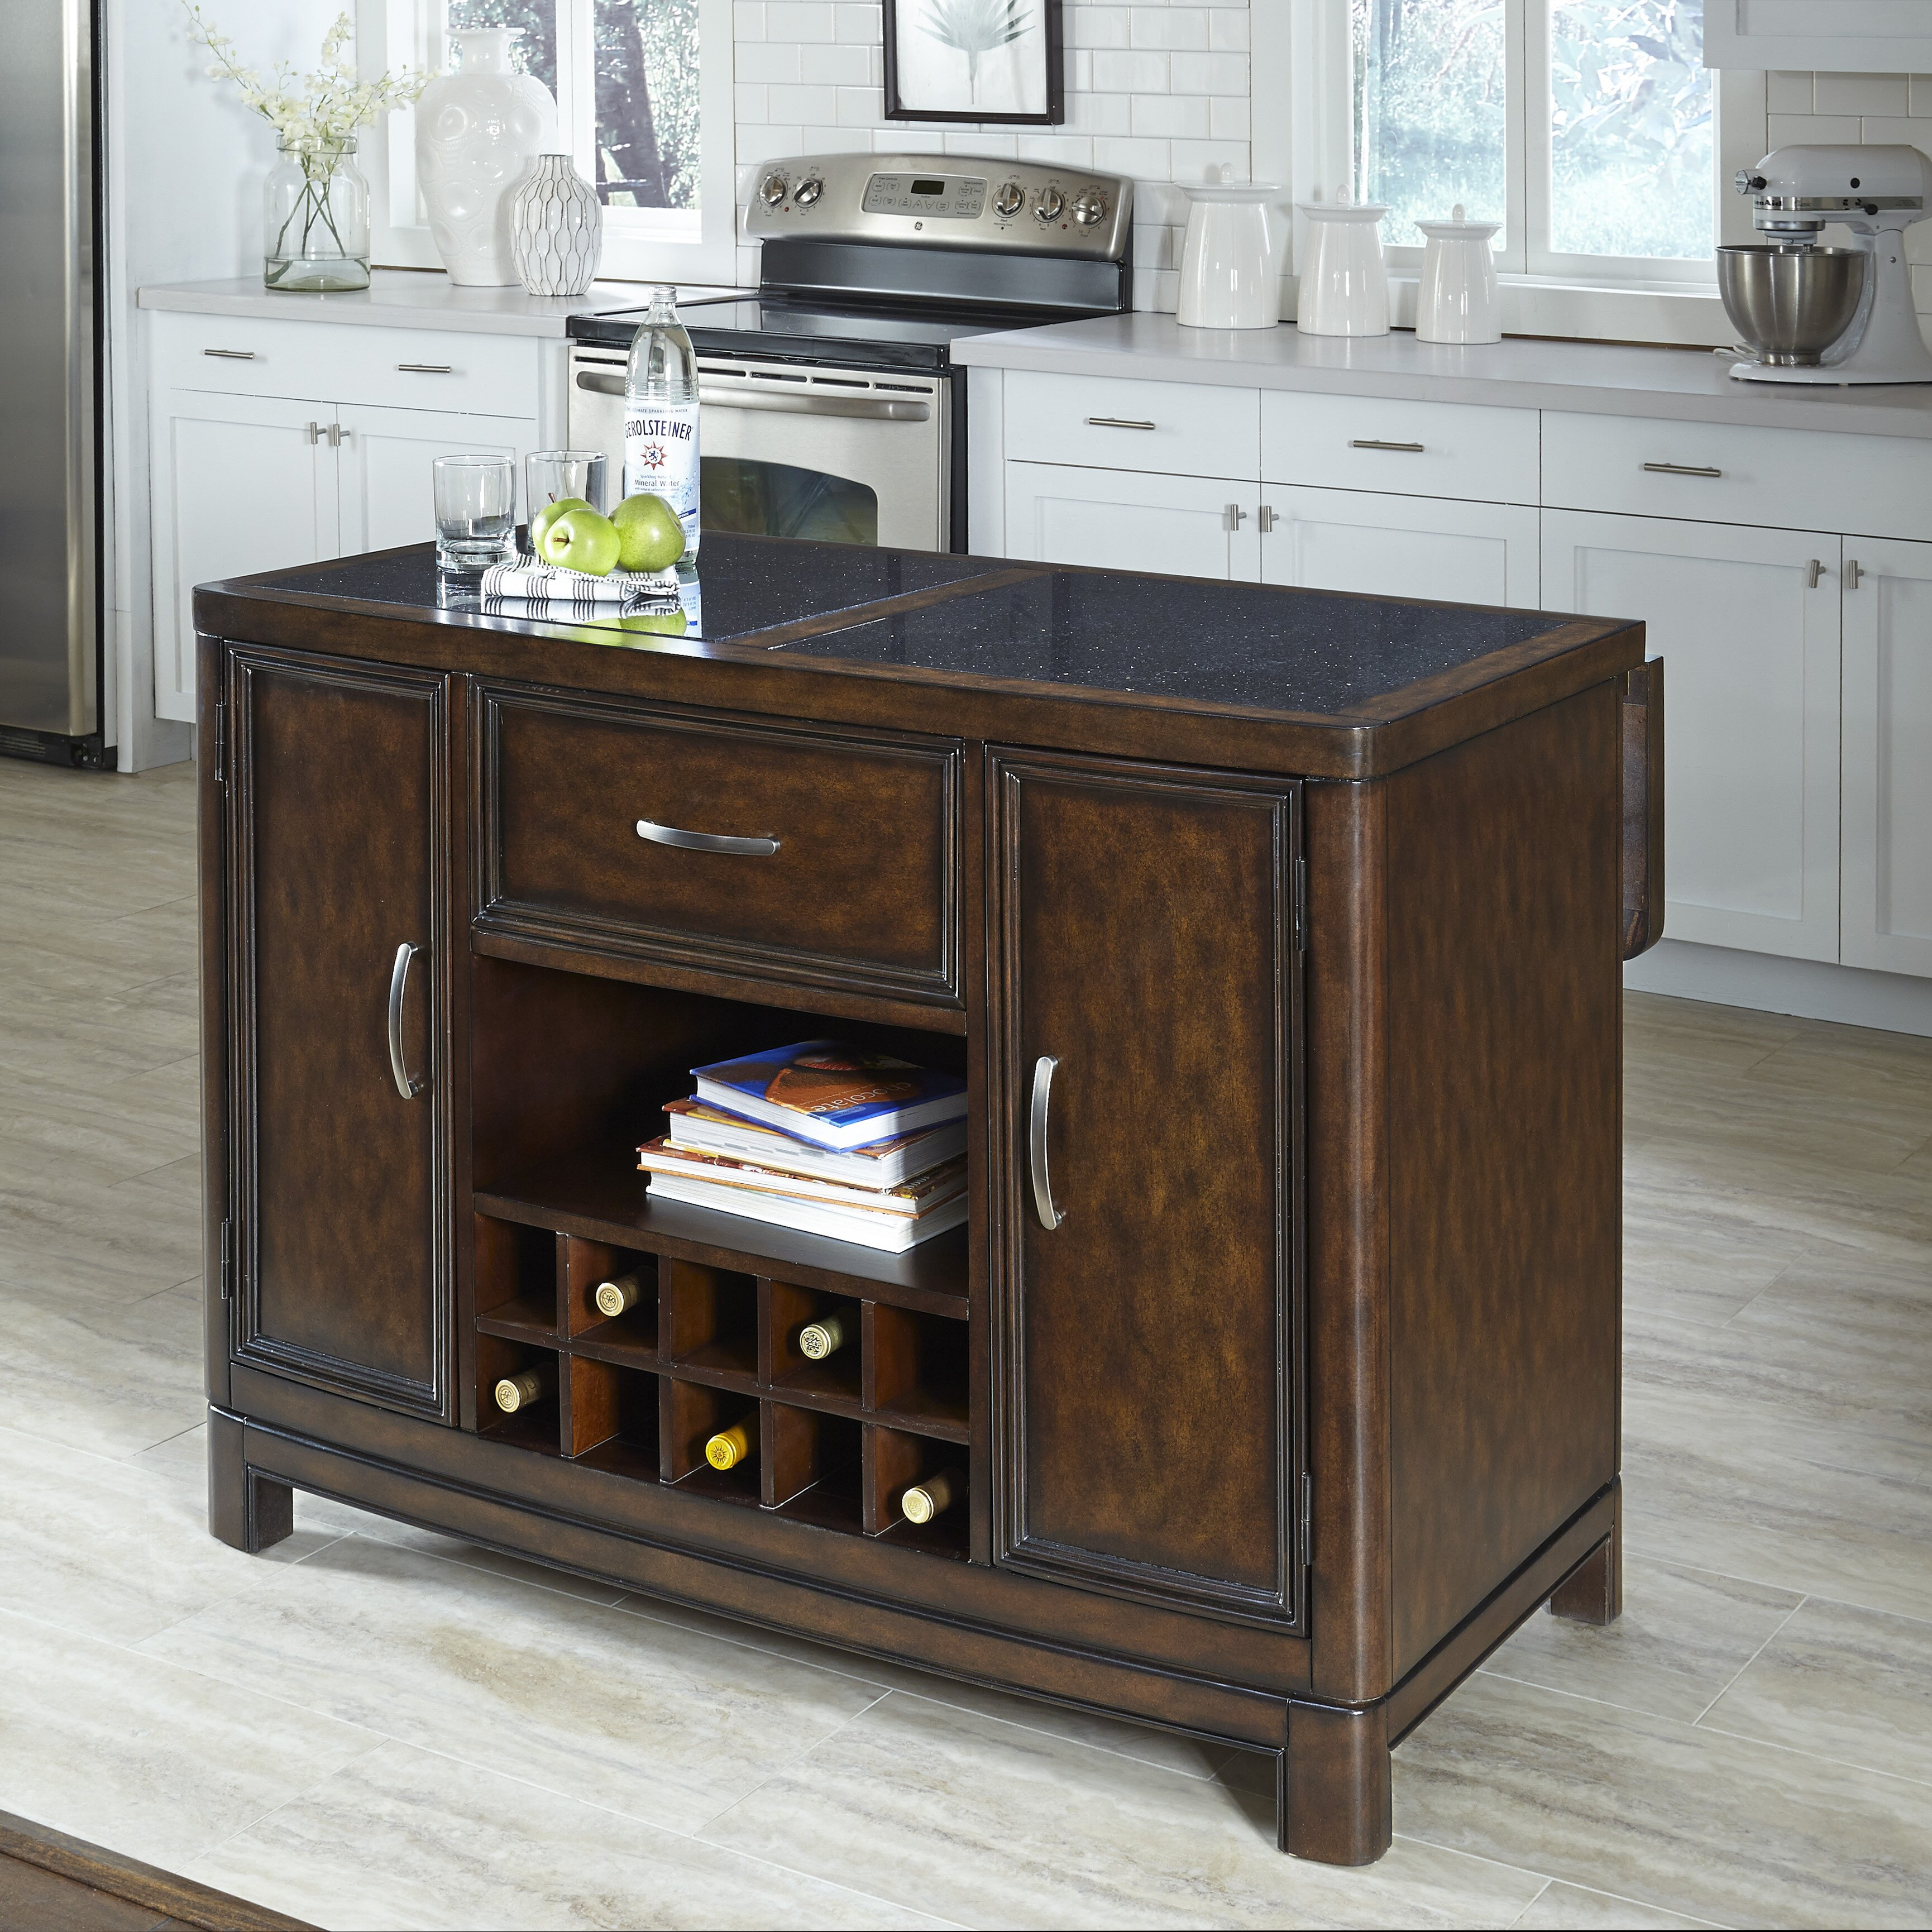 Home Styles Kitchen Island: Home Styles Crescent Hill Kitchen Island With Granite Top